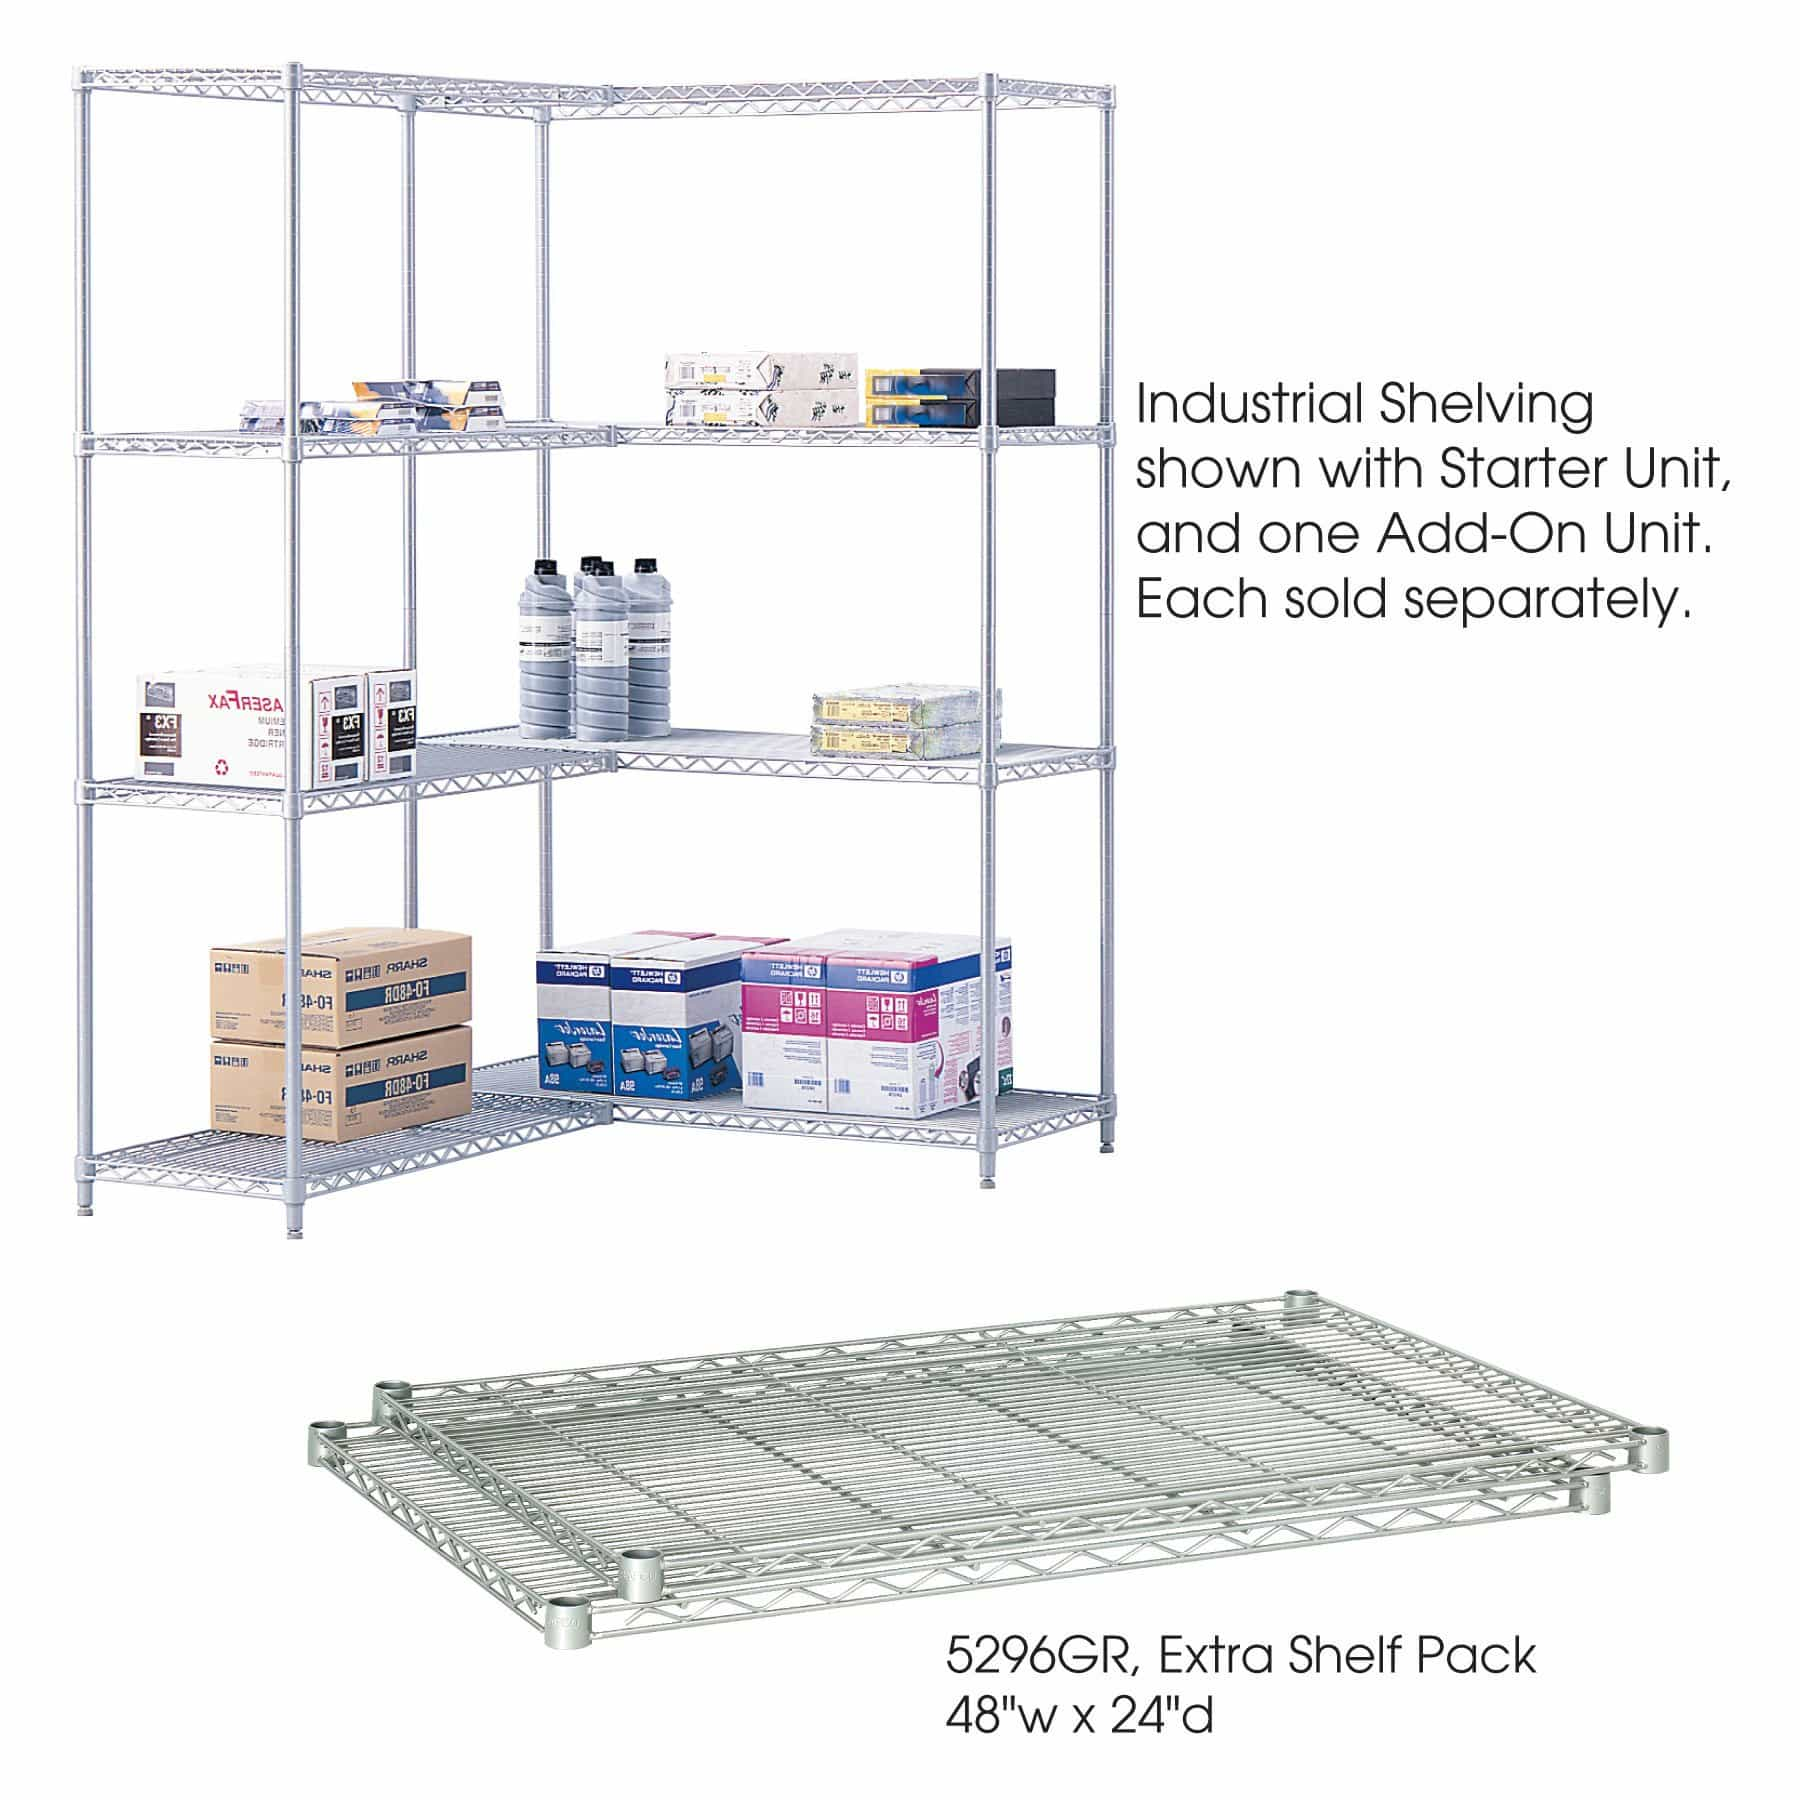 bedinhome - Industrial 48 In x 24 In Extra strength powder coat finish storage Shelf Pack - Safco - Wire Shelving